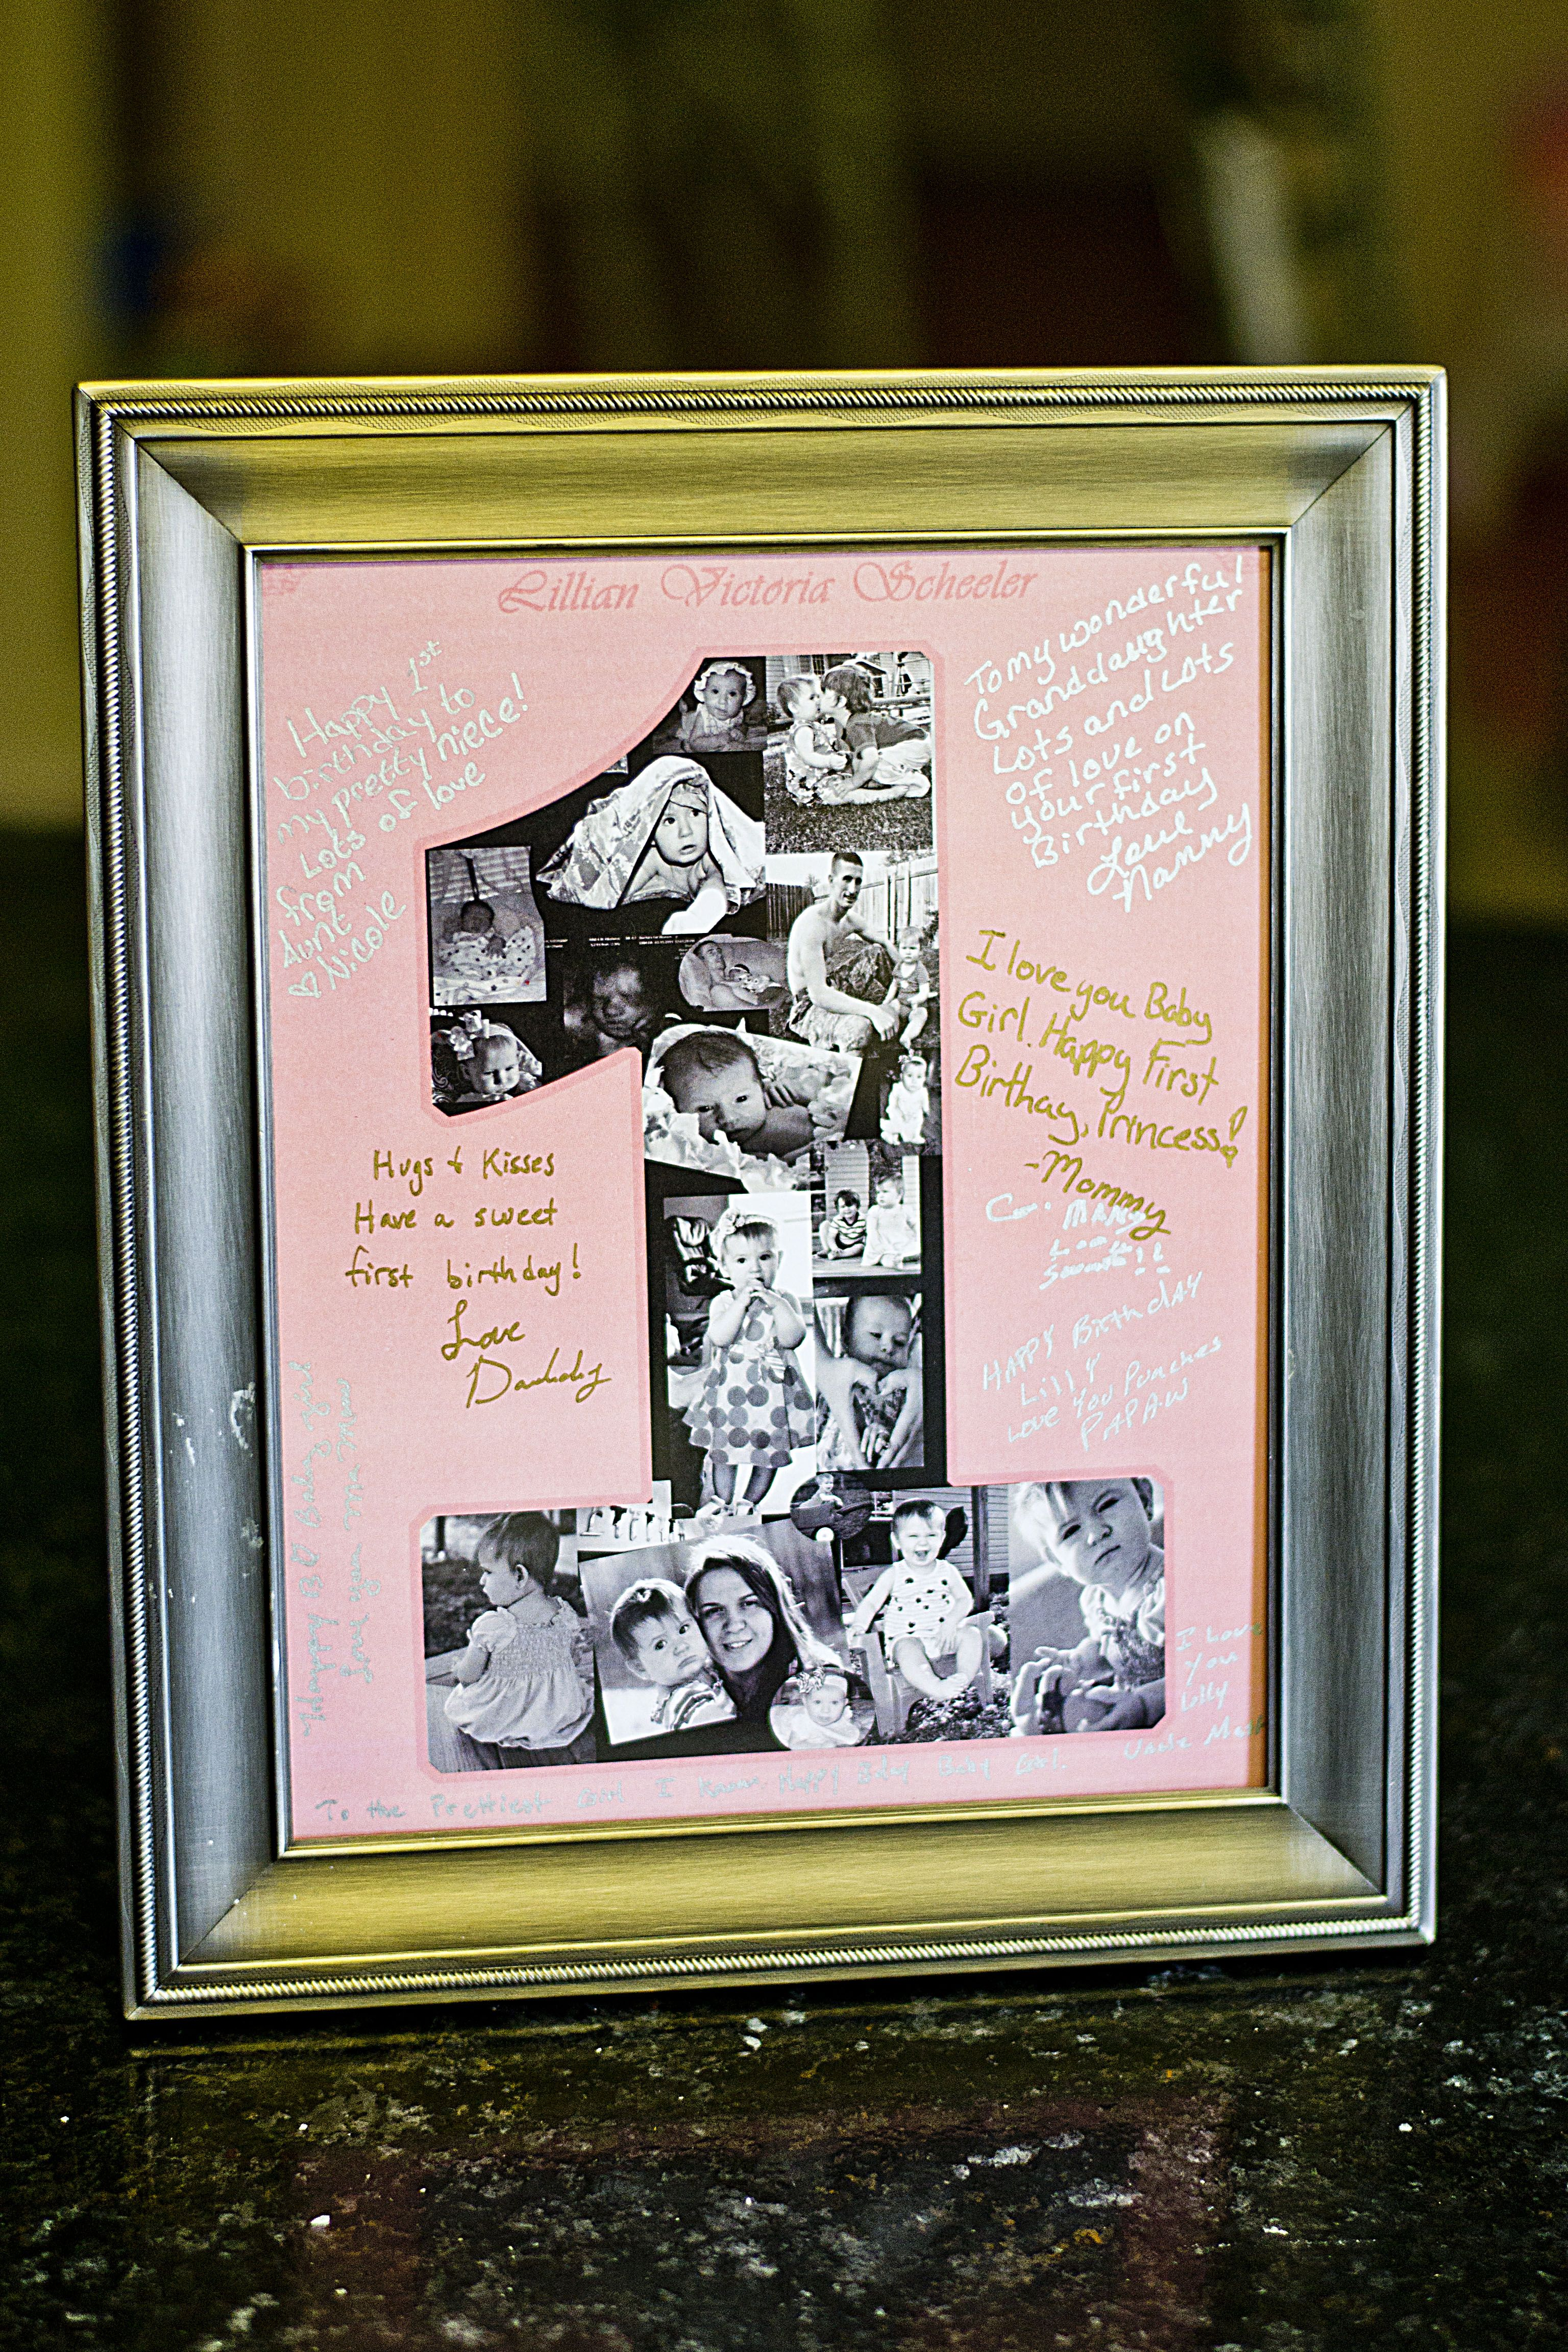 Autograph Personalized Birthday Photo Lilly inspired